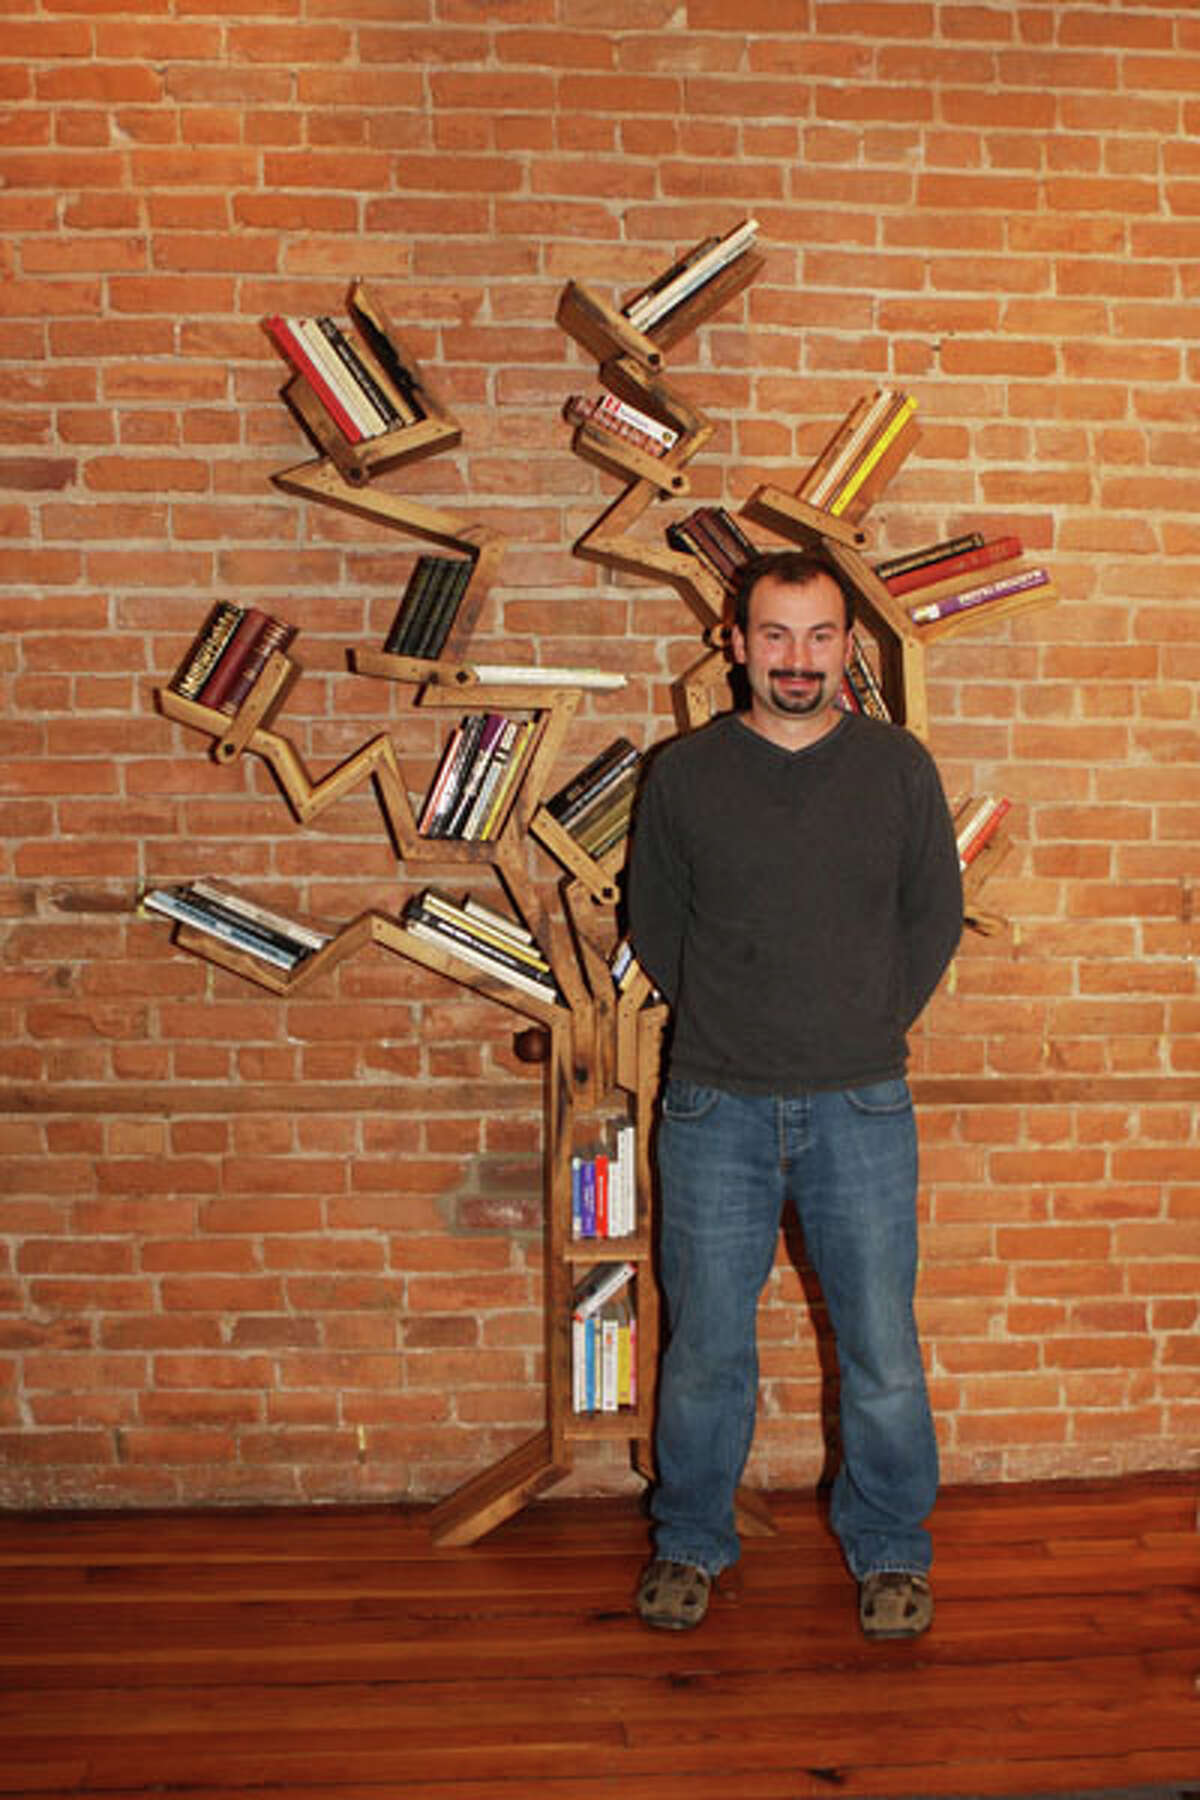 Fine furniture maker Jim Smith creates materpieces of functional art from his woodworking shop in Schuylerville. Pictured above, Smith stands in front of his modifiable book tree,